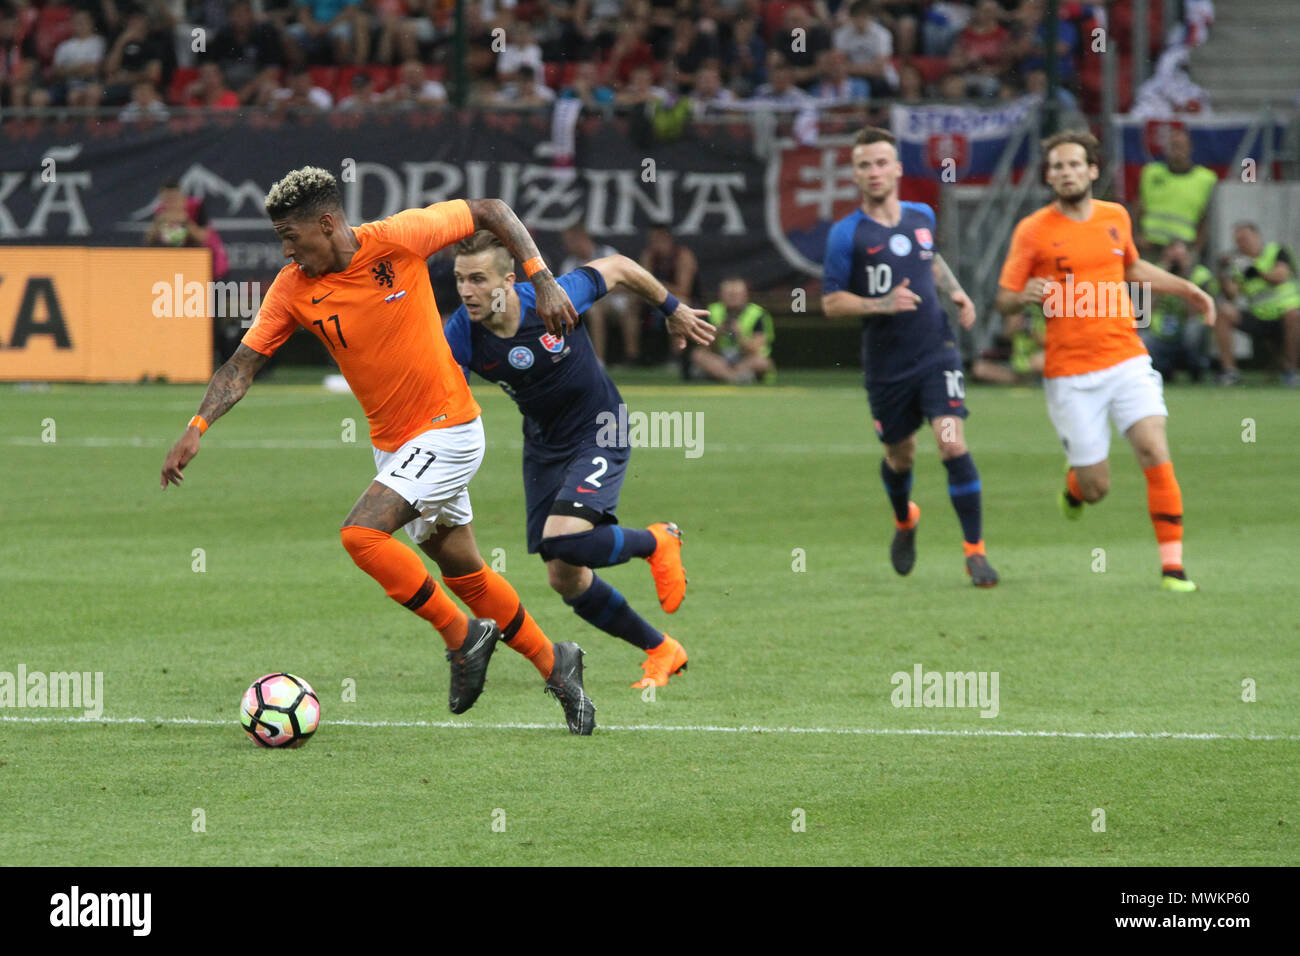 Trnava, Slovakia. 31st May, 2018. Patrick Van Aanholt (11) during the friendly football match between Slovakia and Netherlands (1 – 1). - Stock Image